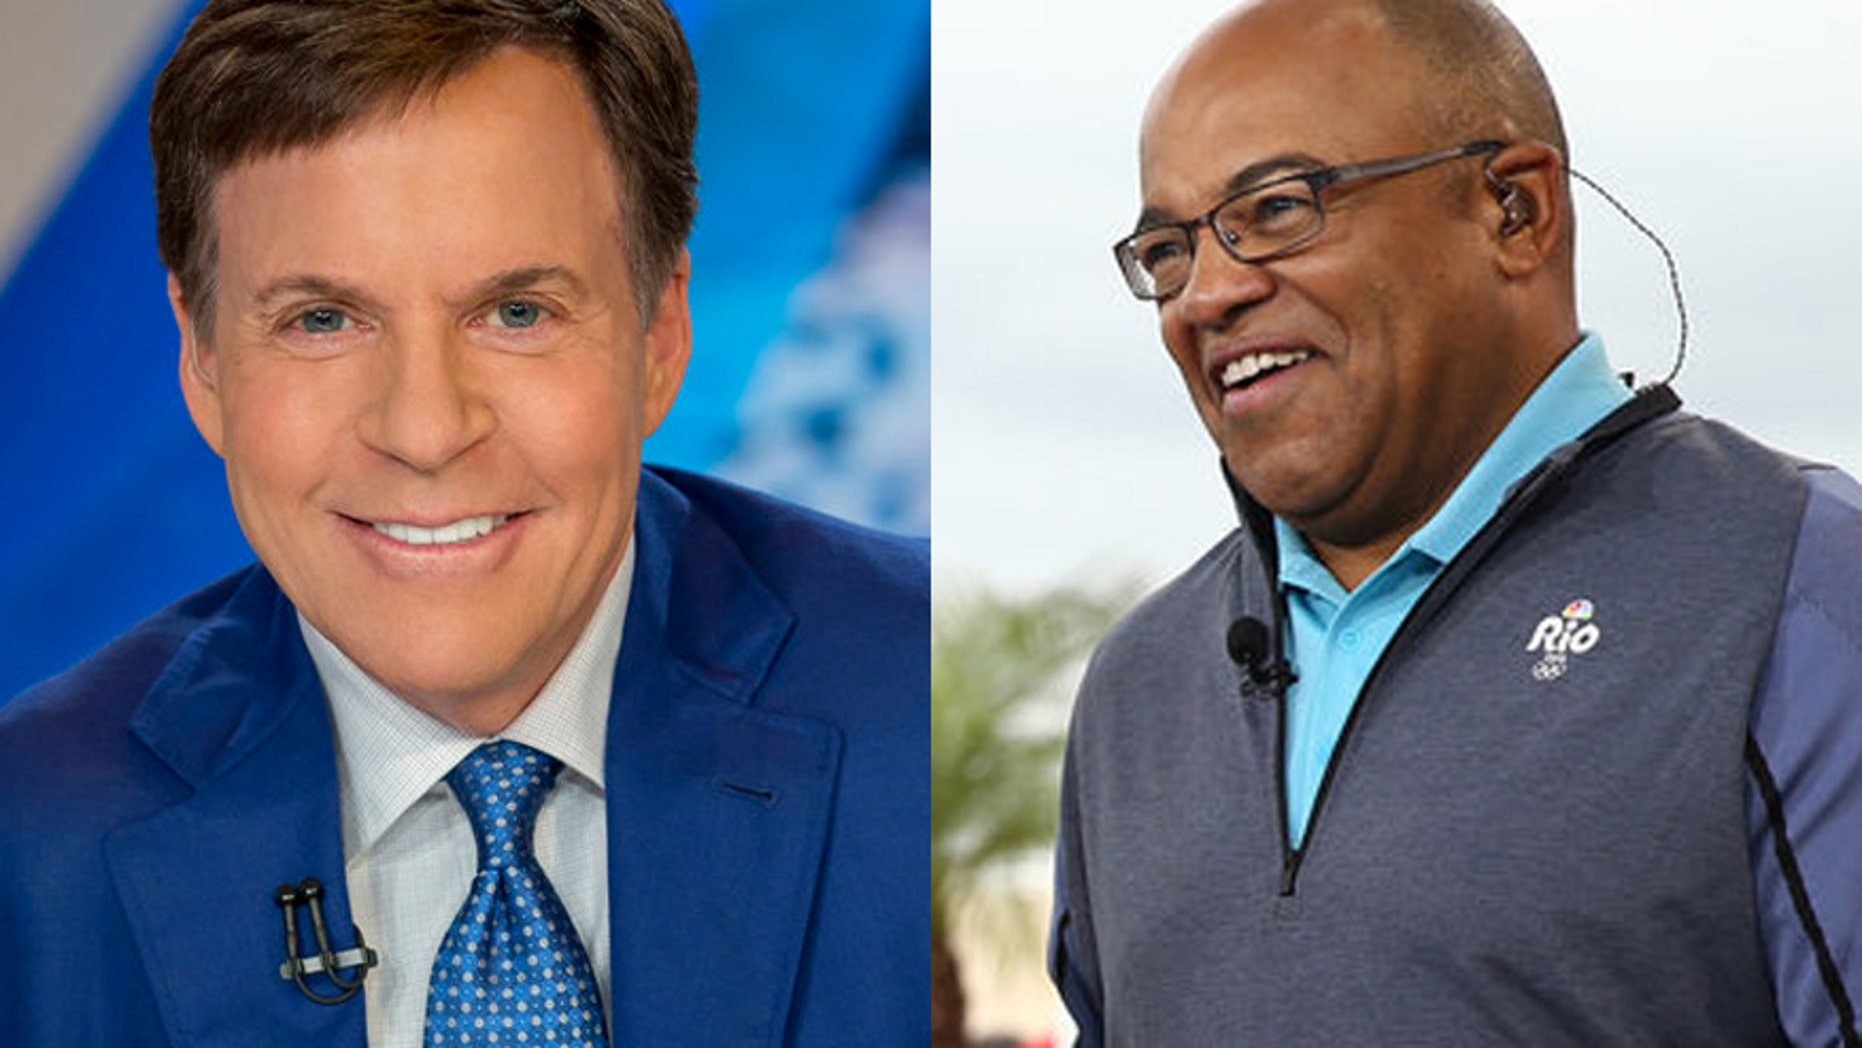 Bob Costas was replaced by Mike Tirico after stepping down from his role as prime-time host of NBC's Olympics coverage.